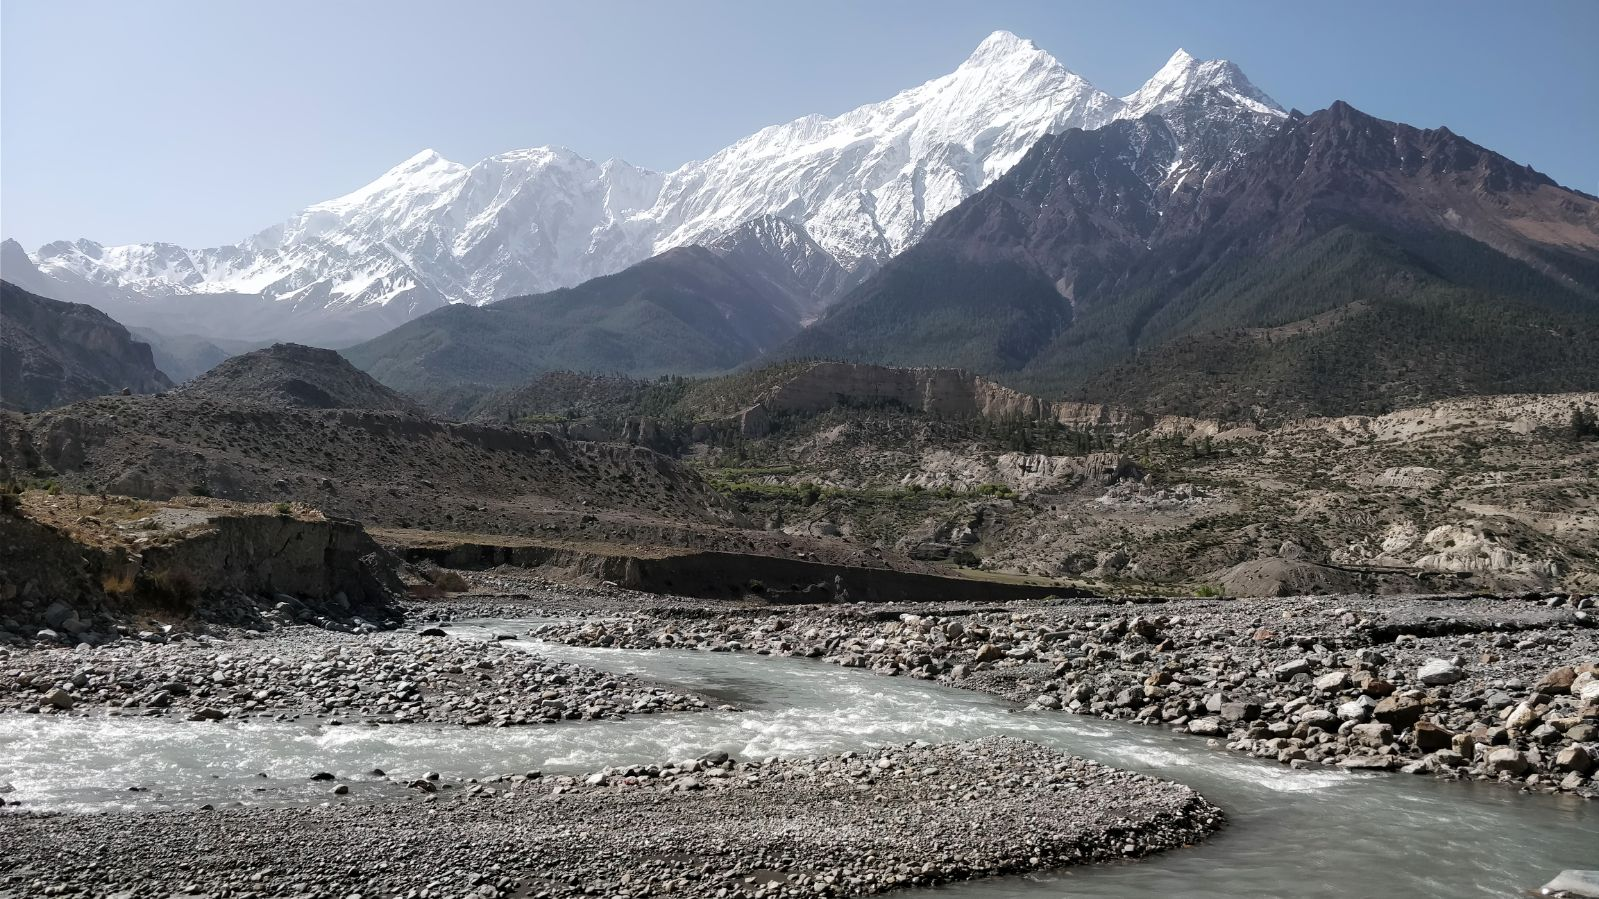 Photos from our research tour currently taking place in Nepal